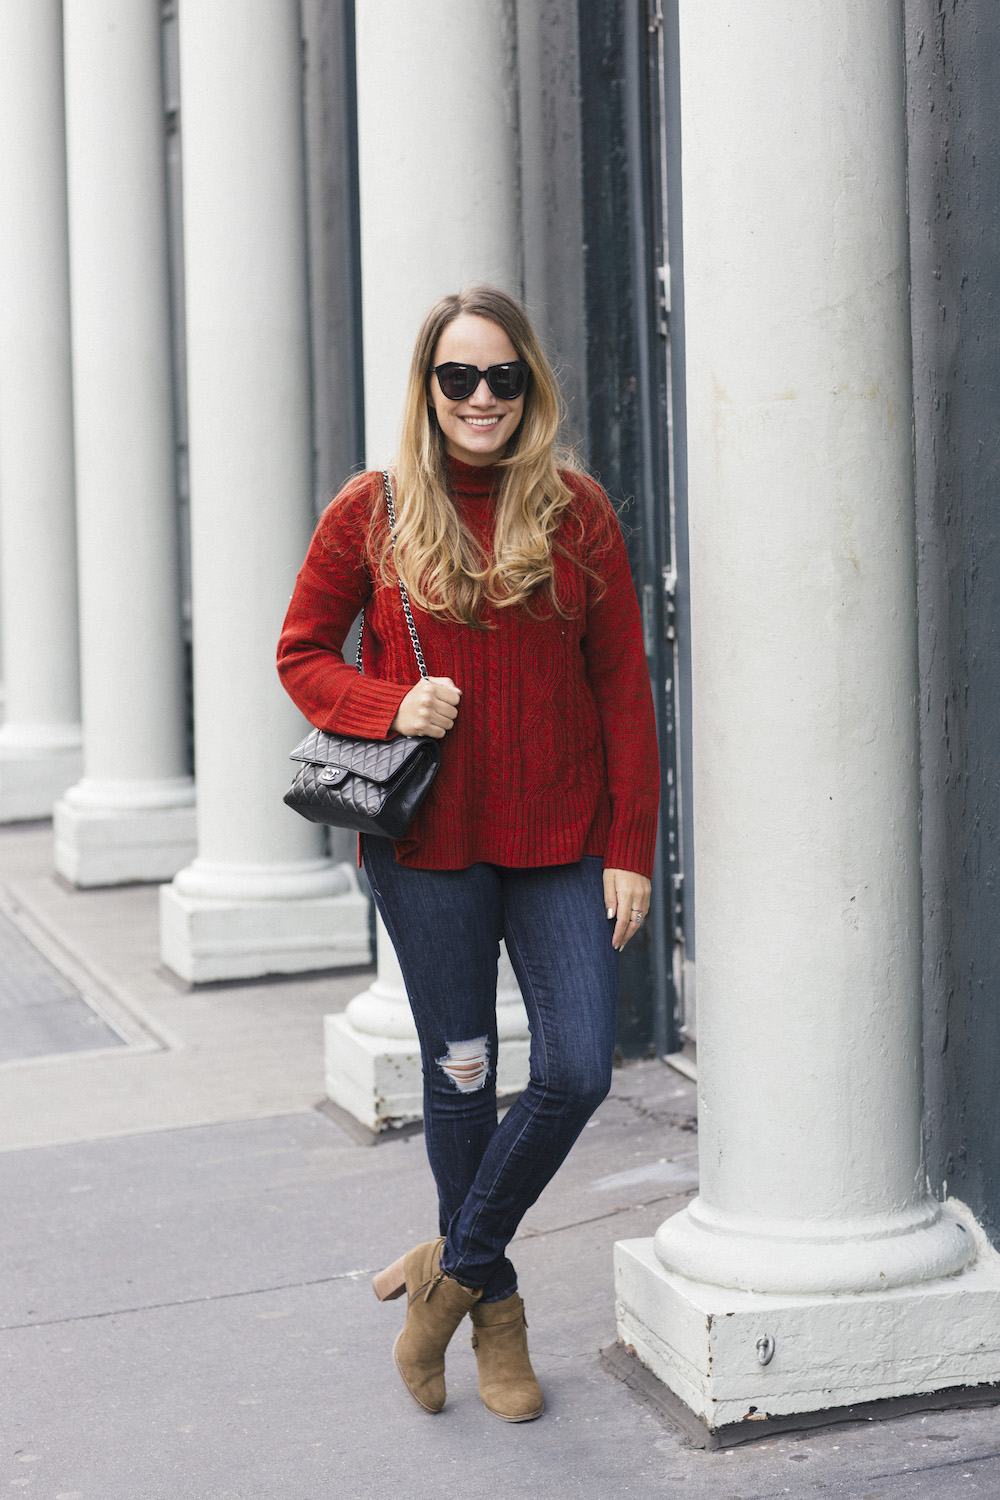 Sanctuary Turtleneck, Good American Jeans - A Cozy Winter Outfit Idea | Grace Atwood, The Stripe